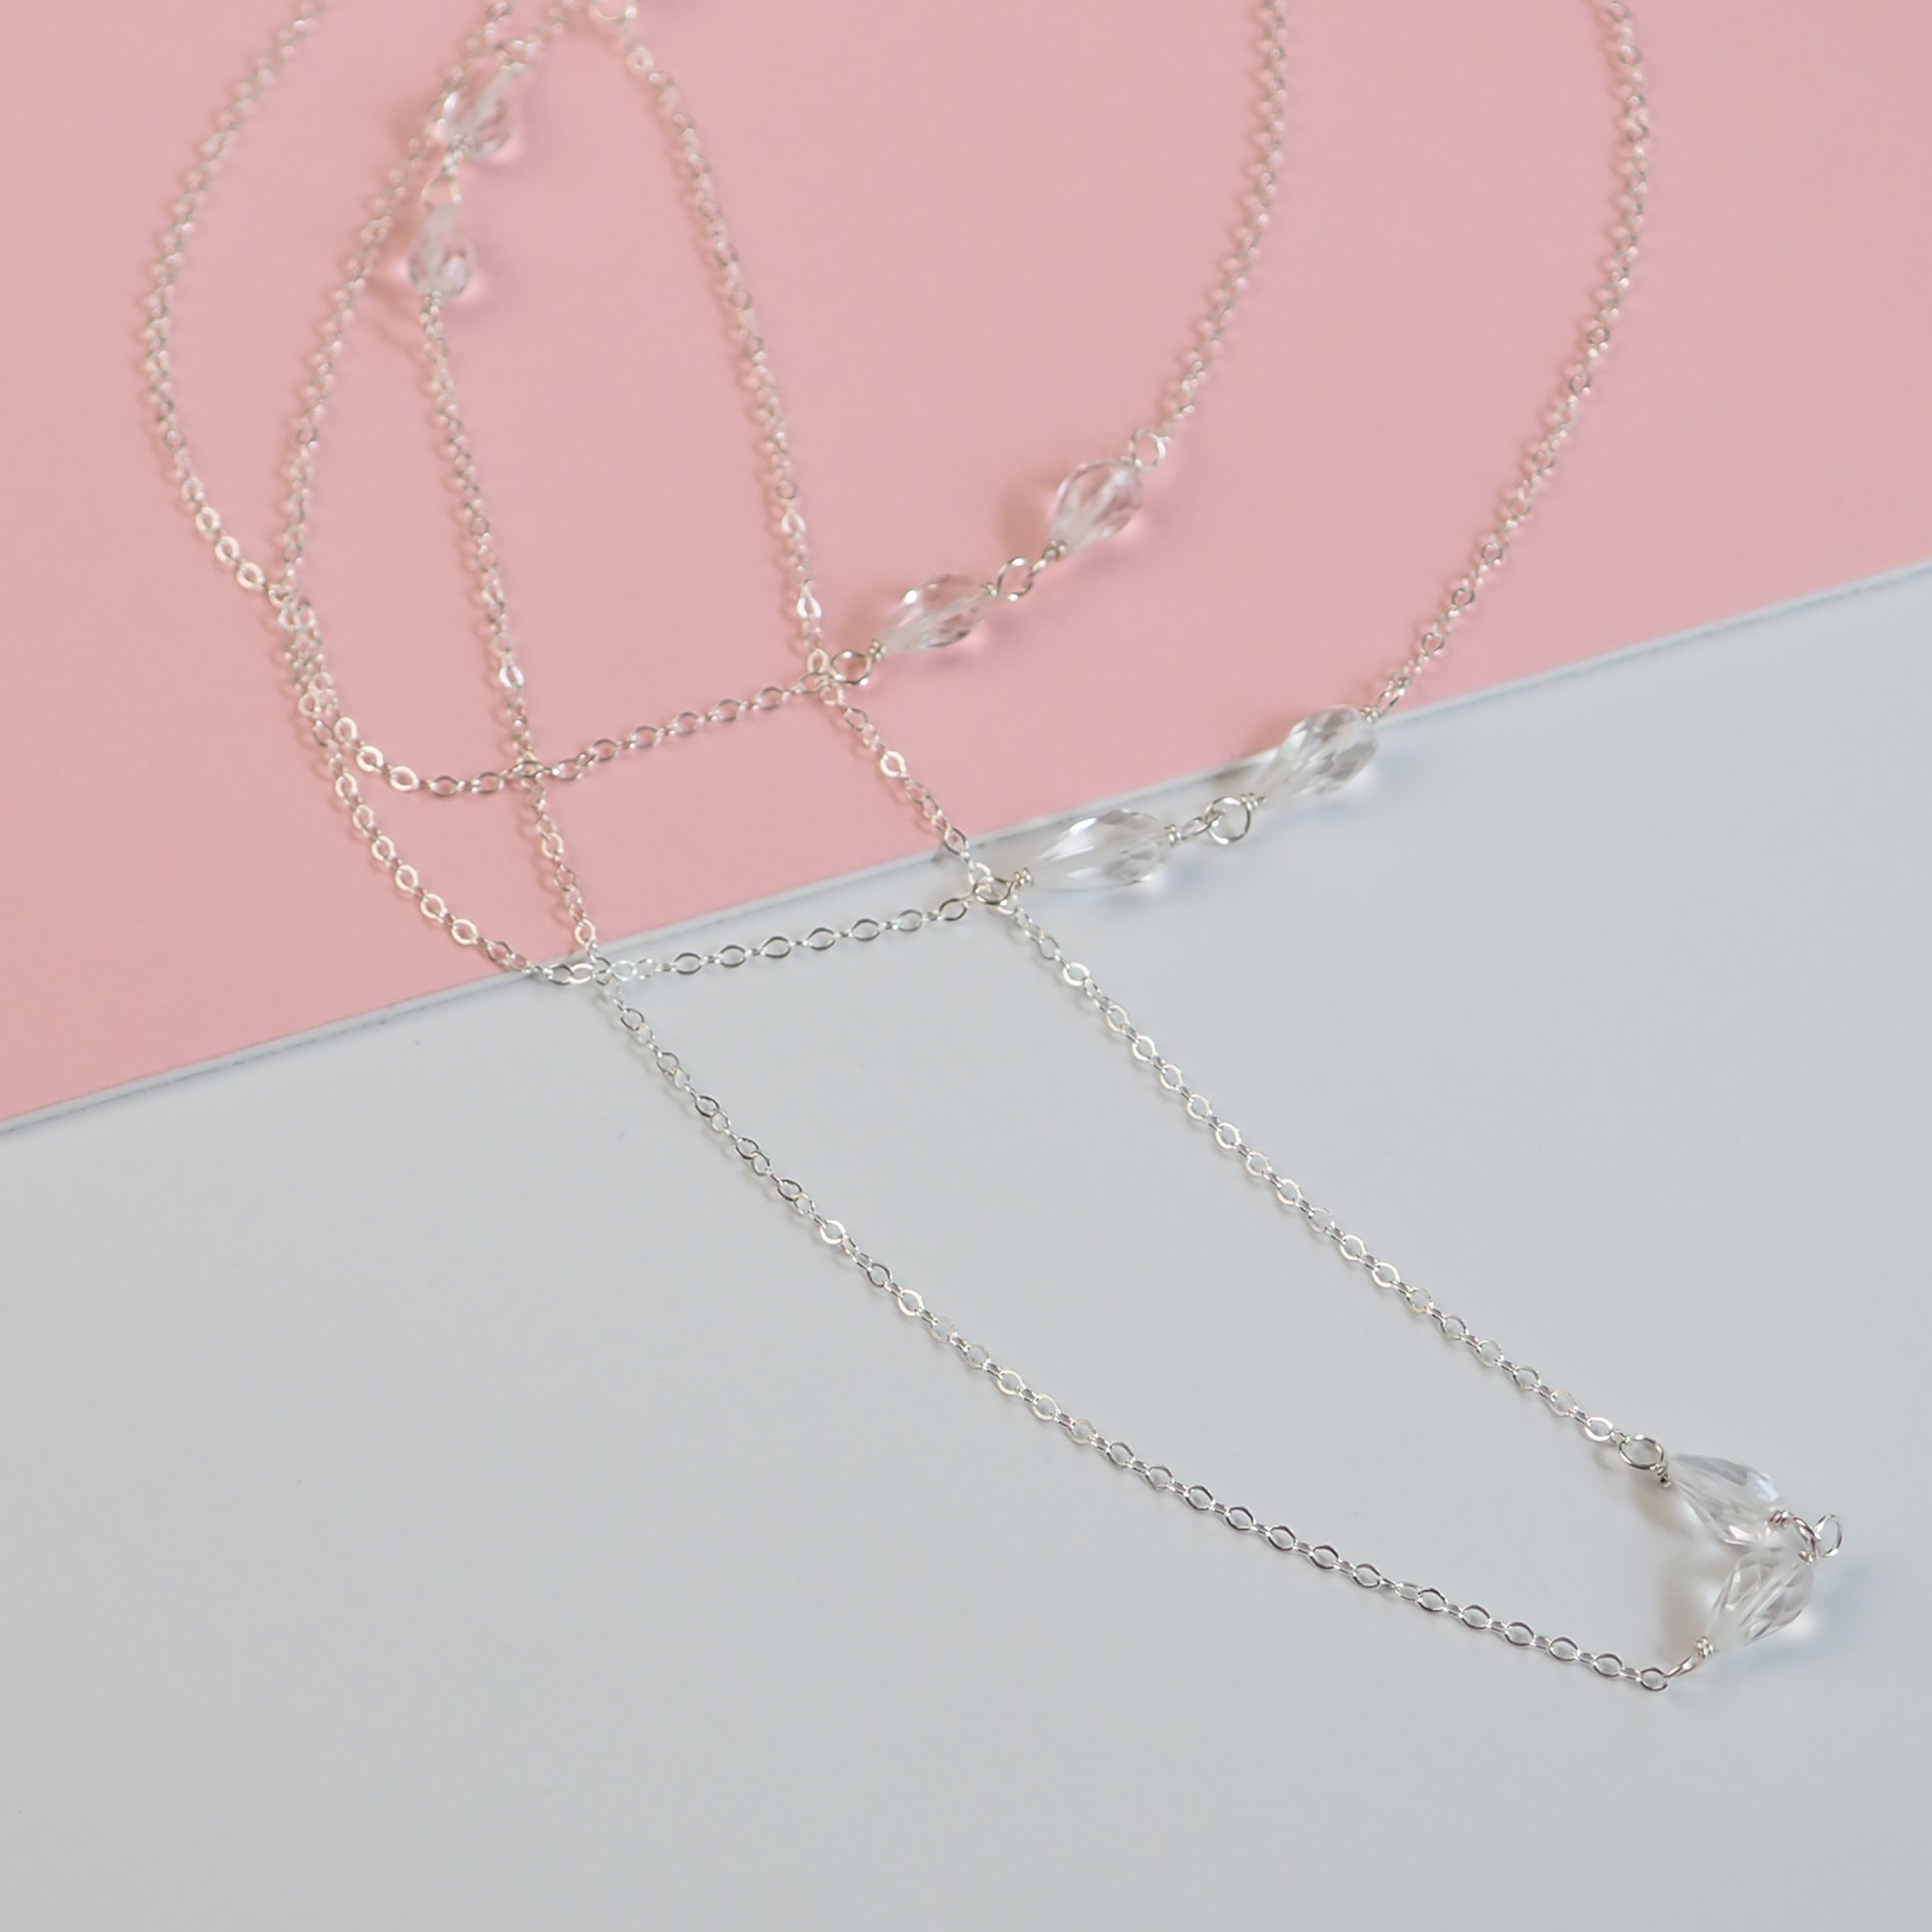 Delicate Long Sterling Silver Chain Necklace with Five Pairs of Faceted Teardrop Quartz Crystals